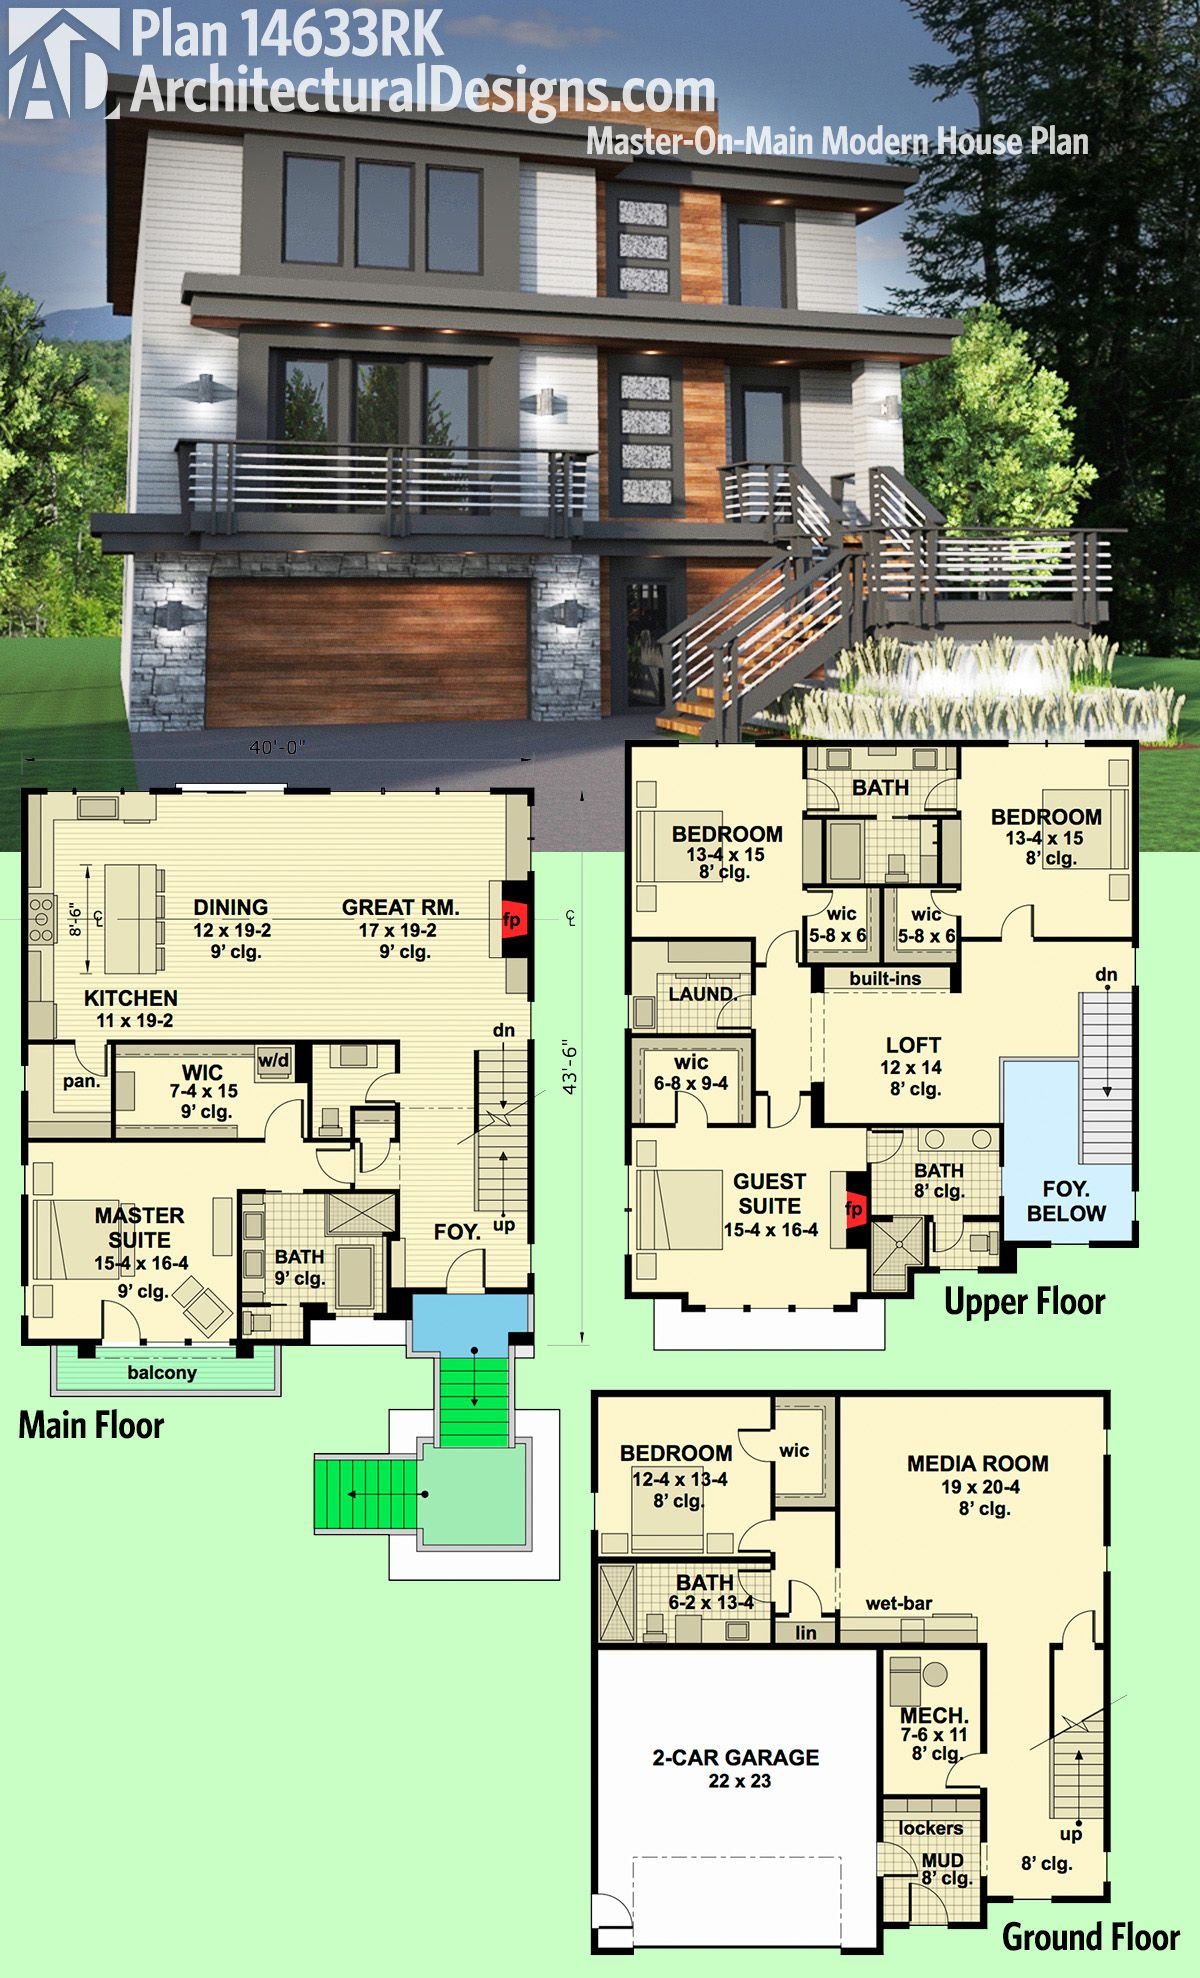 plan 14633rk master on main modern house plan modern On buy architectural plans